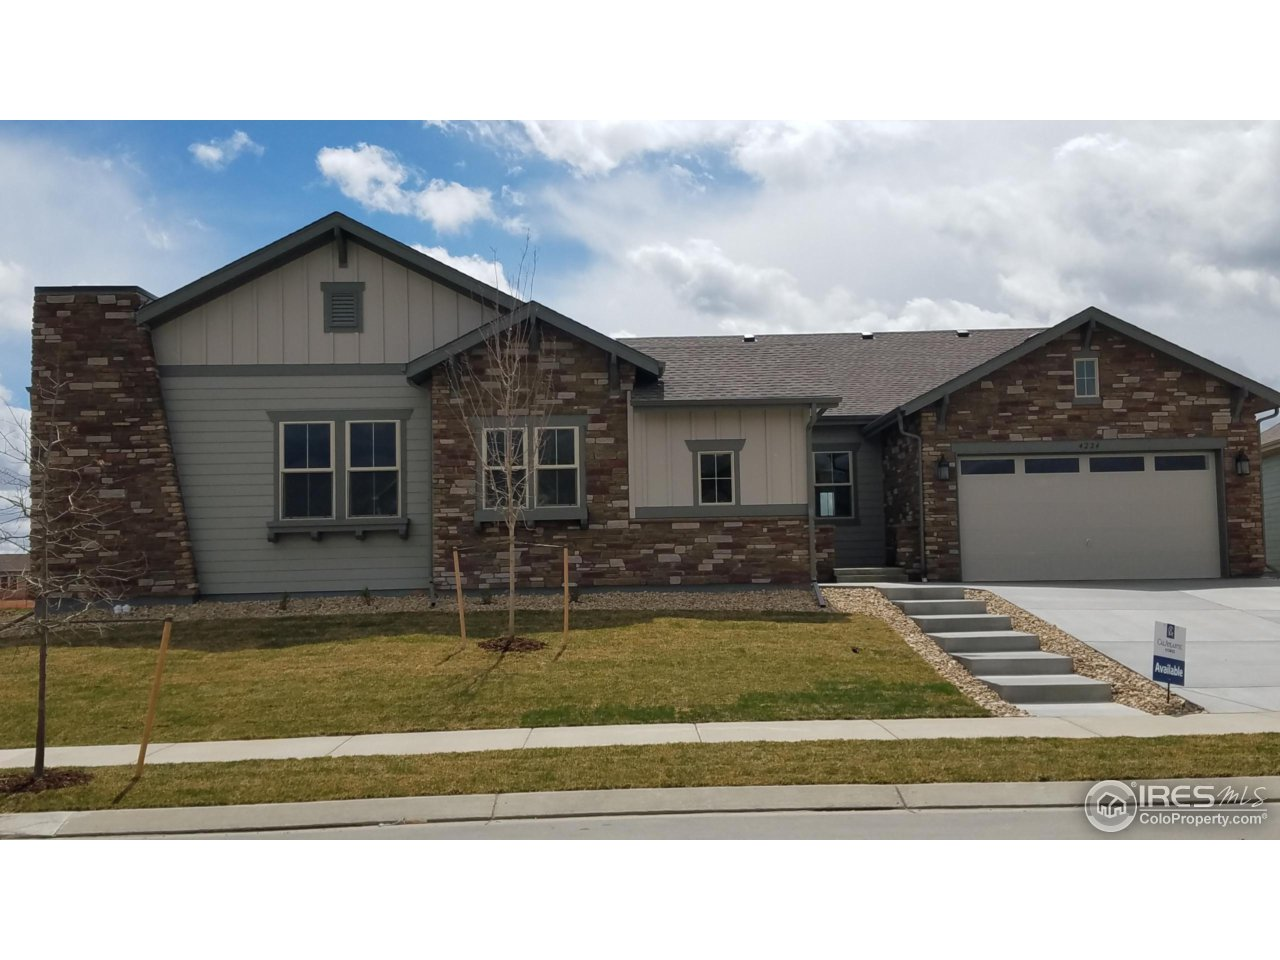 4224 Heatherhill Cir, Longmont, CO 80503